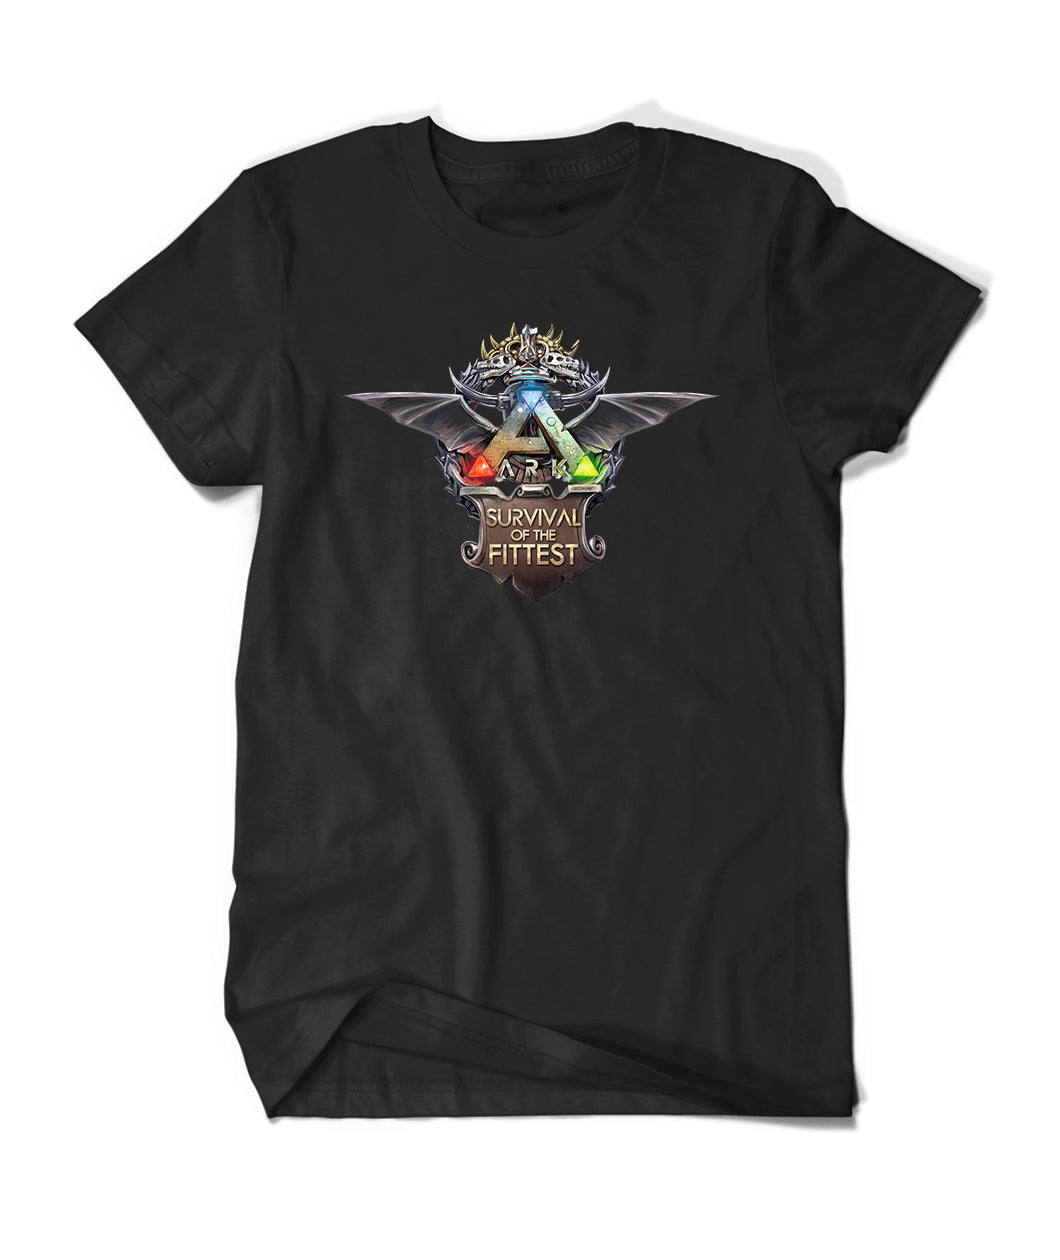 ARK: Survival of the Fittest Shirt